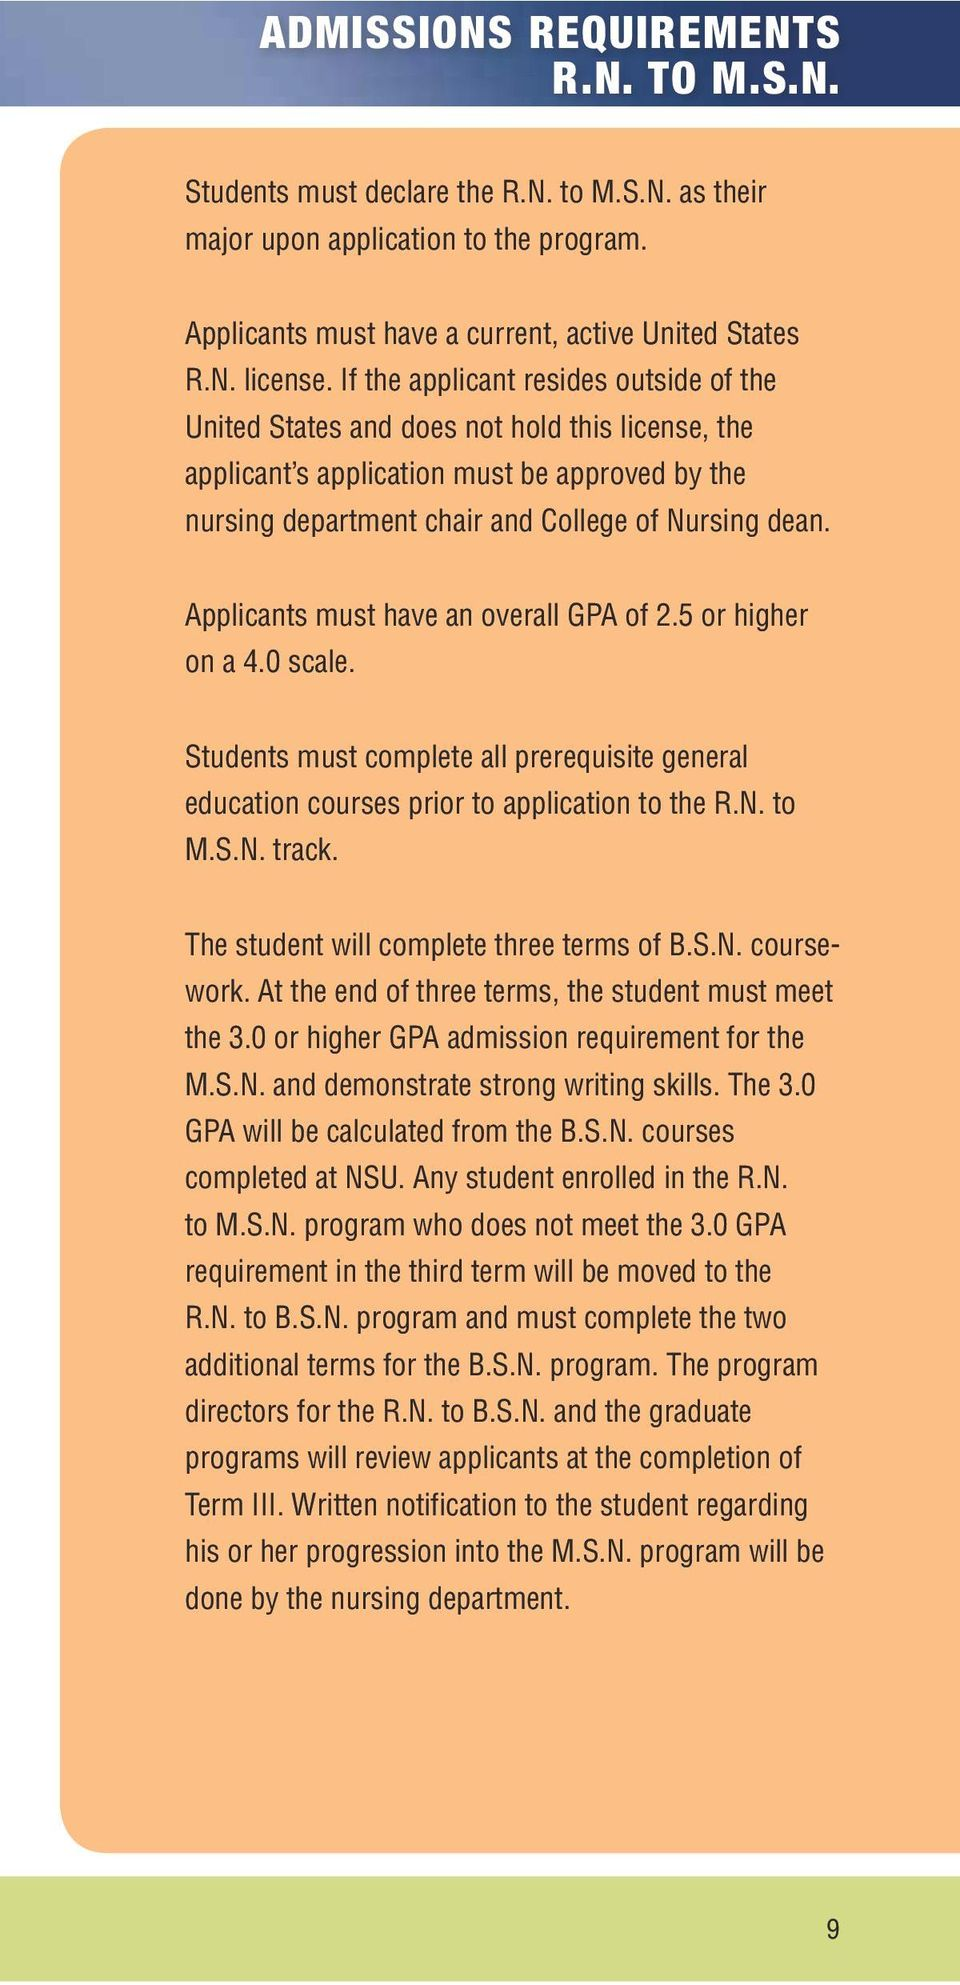 Applicants must have an overall GPA of 2.5 or higher on a 4.0 scale. Students must complete all prerequisite general education courses prior to application to the R.N. to M.S.N. track.